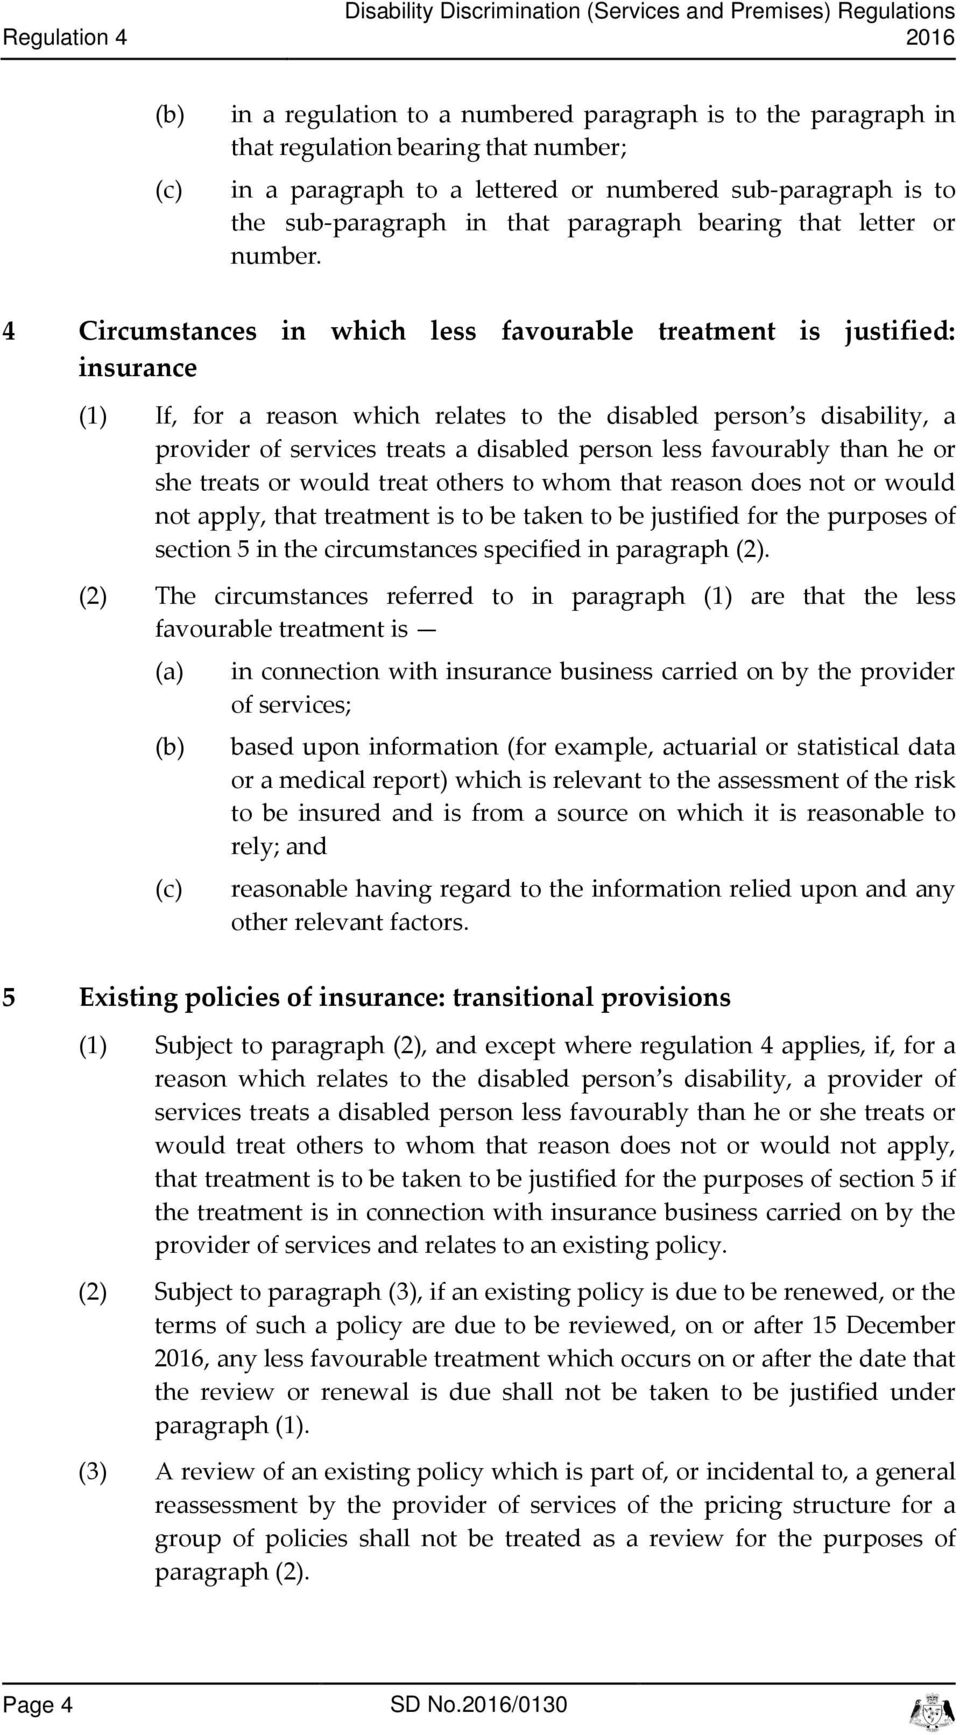 4 Cirumstanes in whih less favourable treatment is justified: insurane (1) If, for a reason whih relates to the disabled person s disability, a provider of servies treats a disabled person less